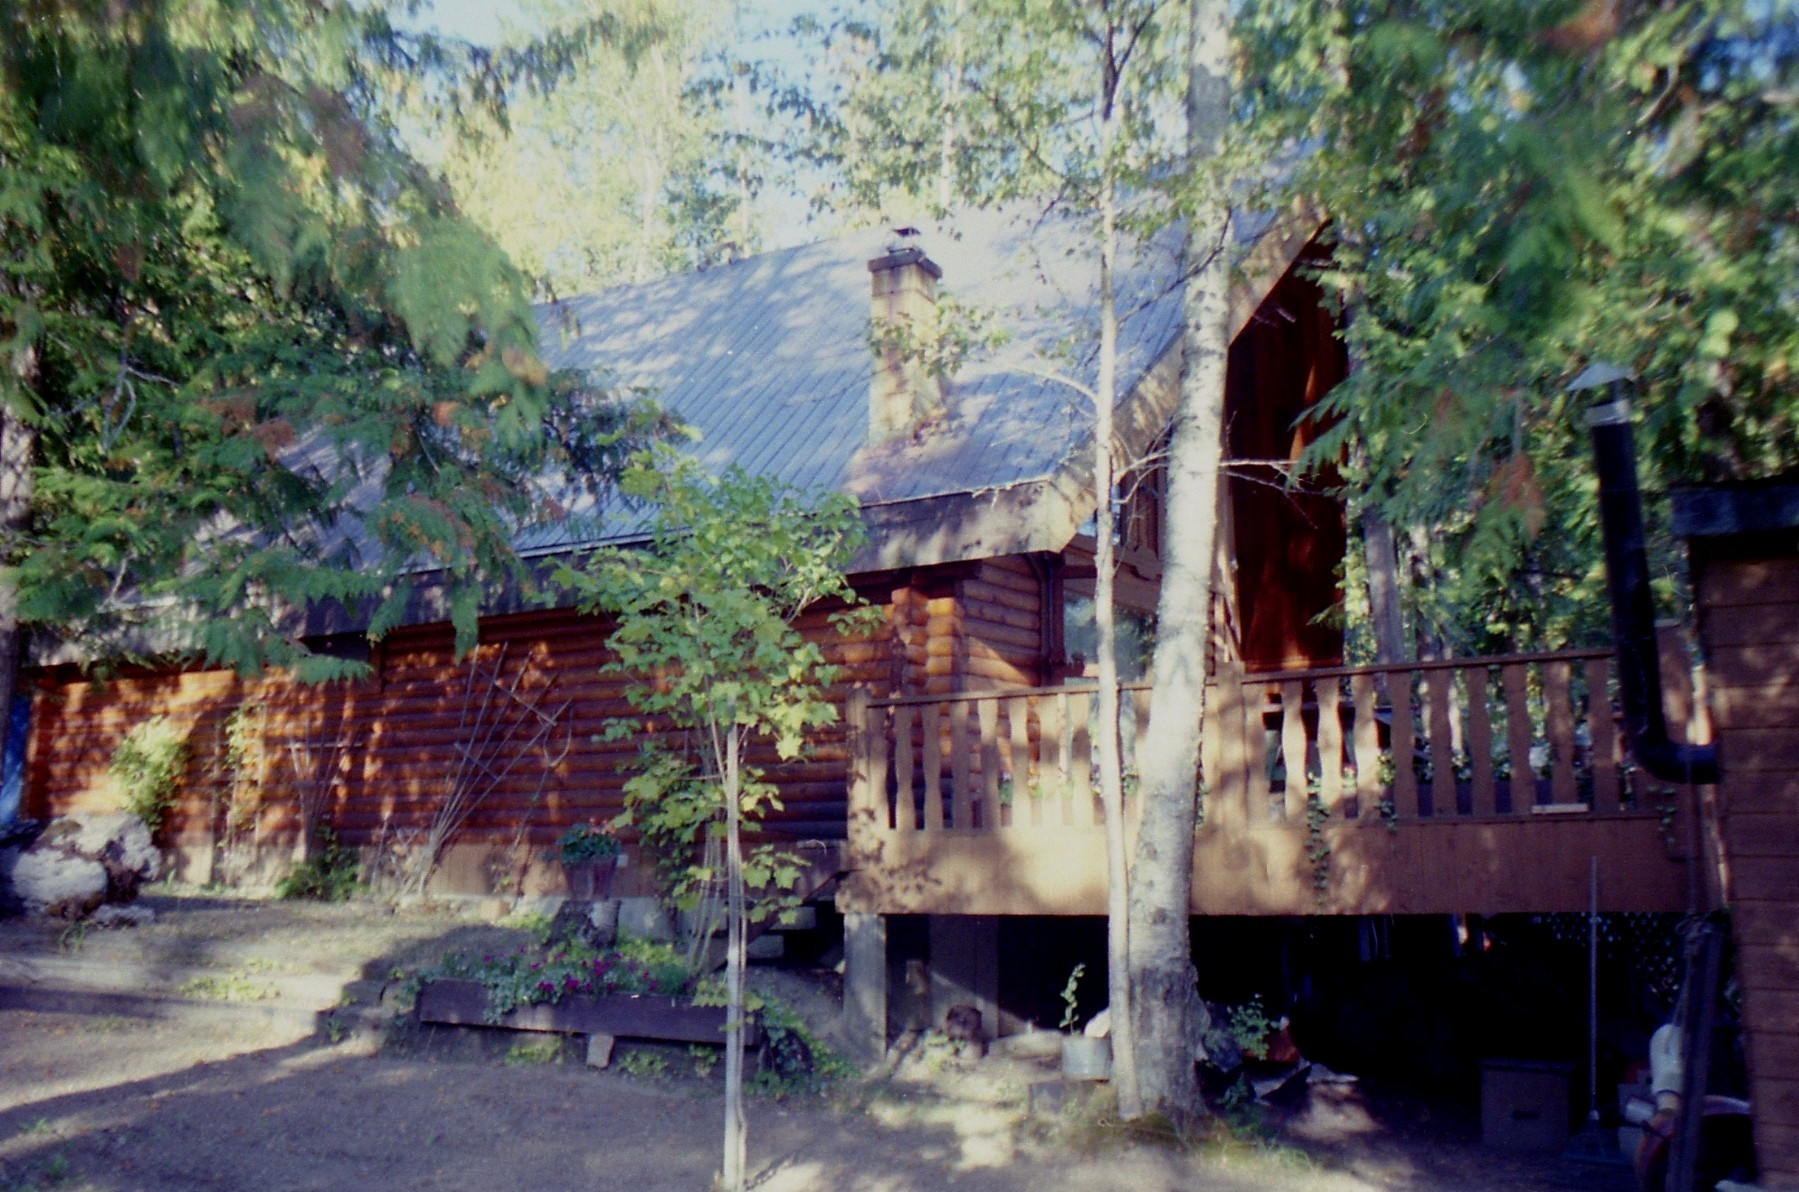 Custom Plan - Shuswap, BC (early 80's)